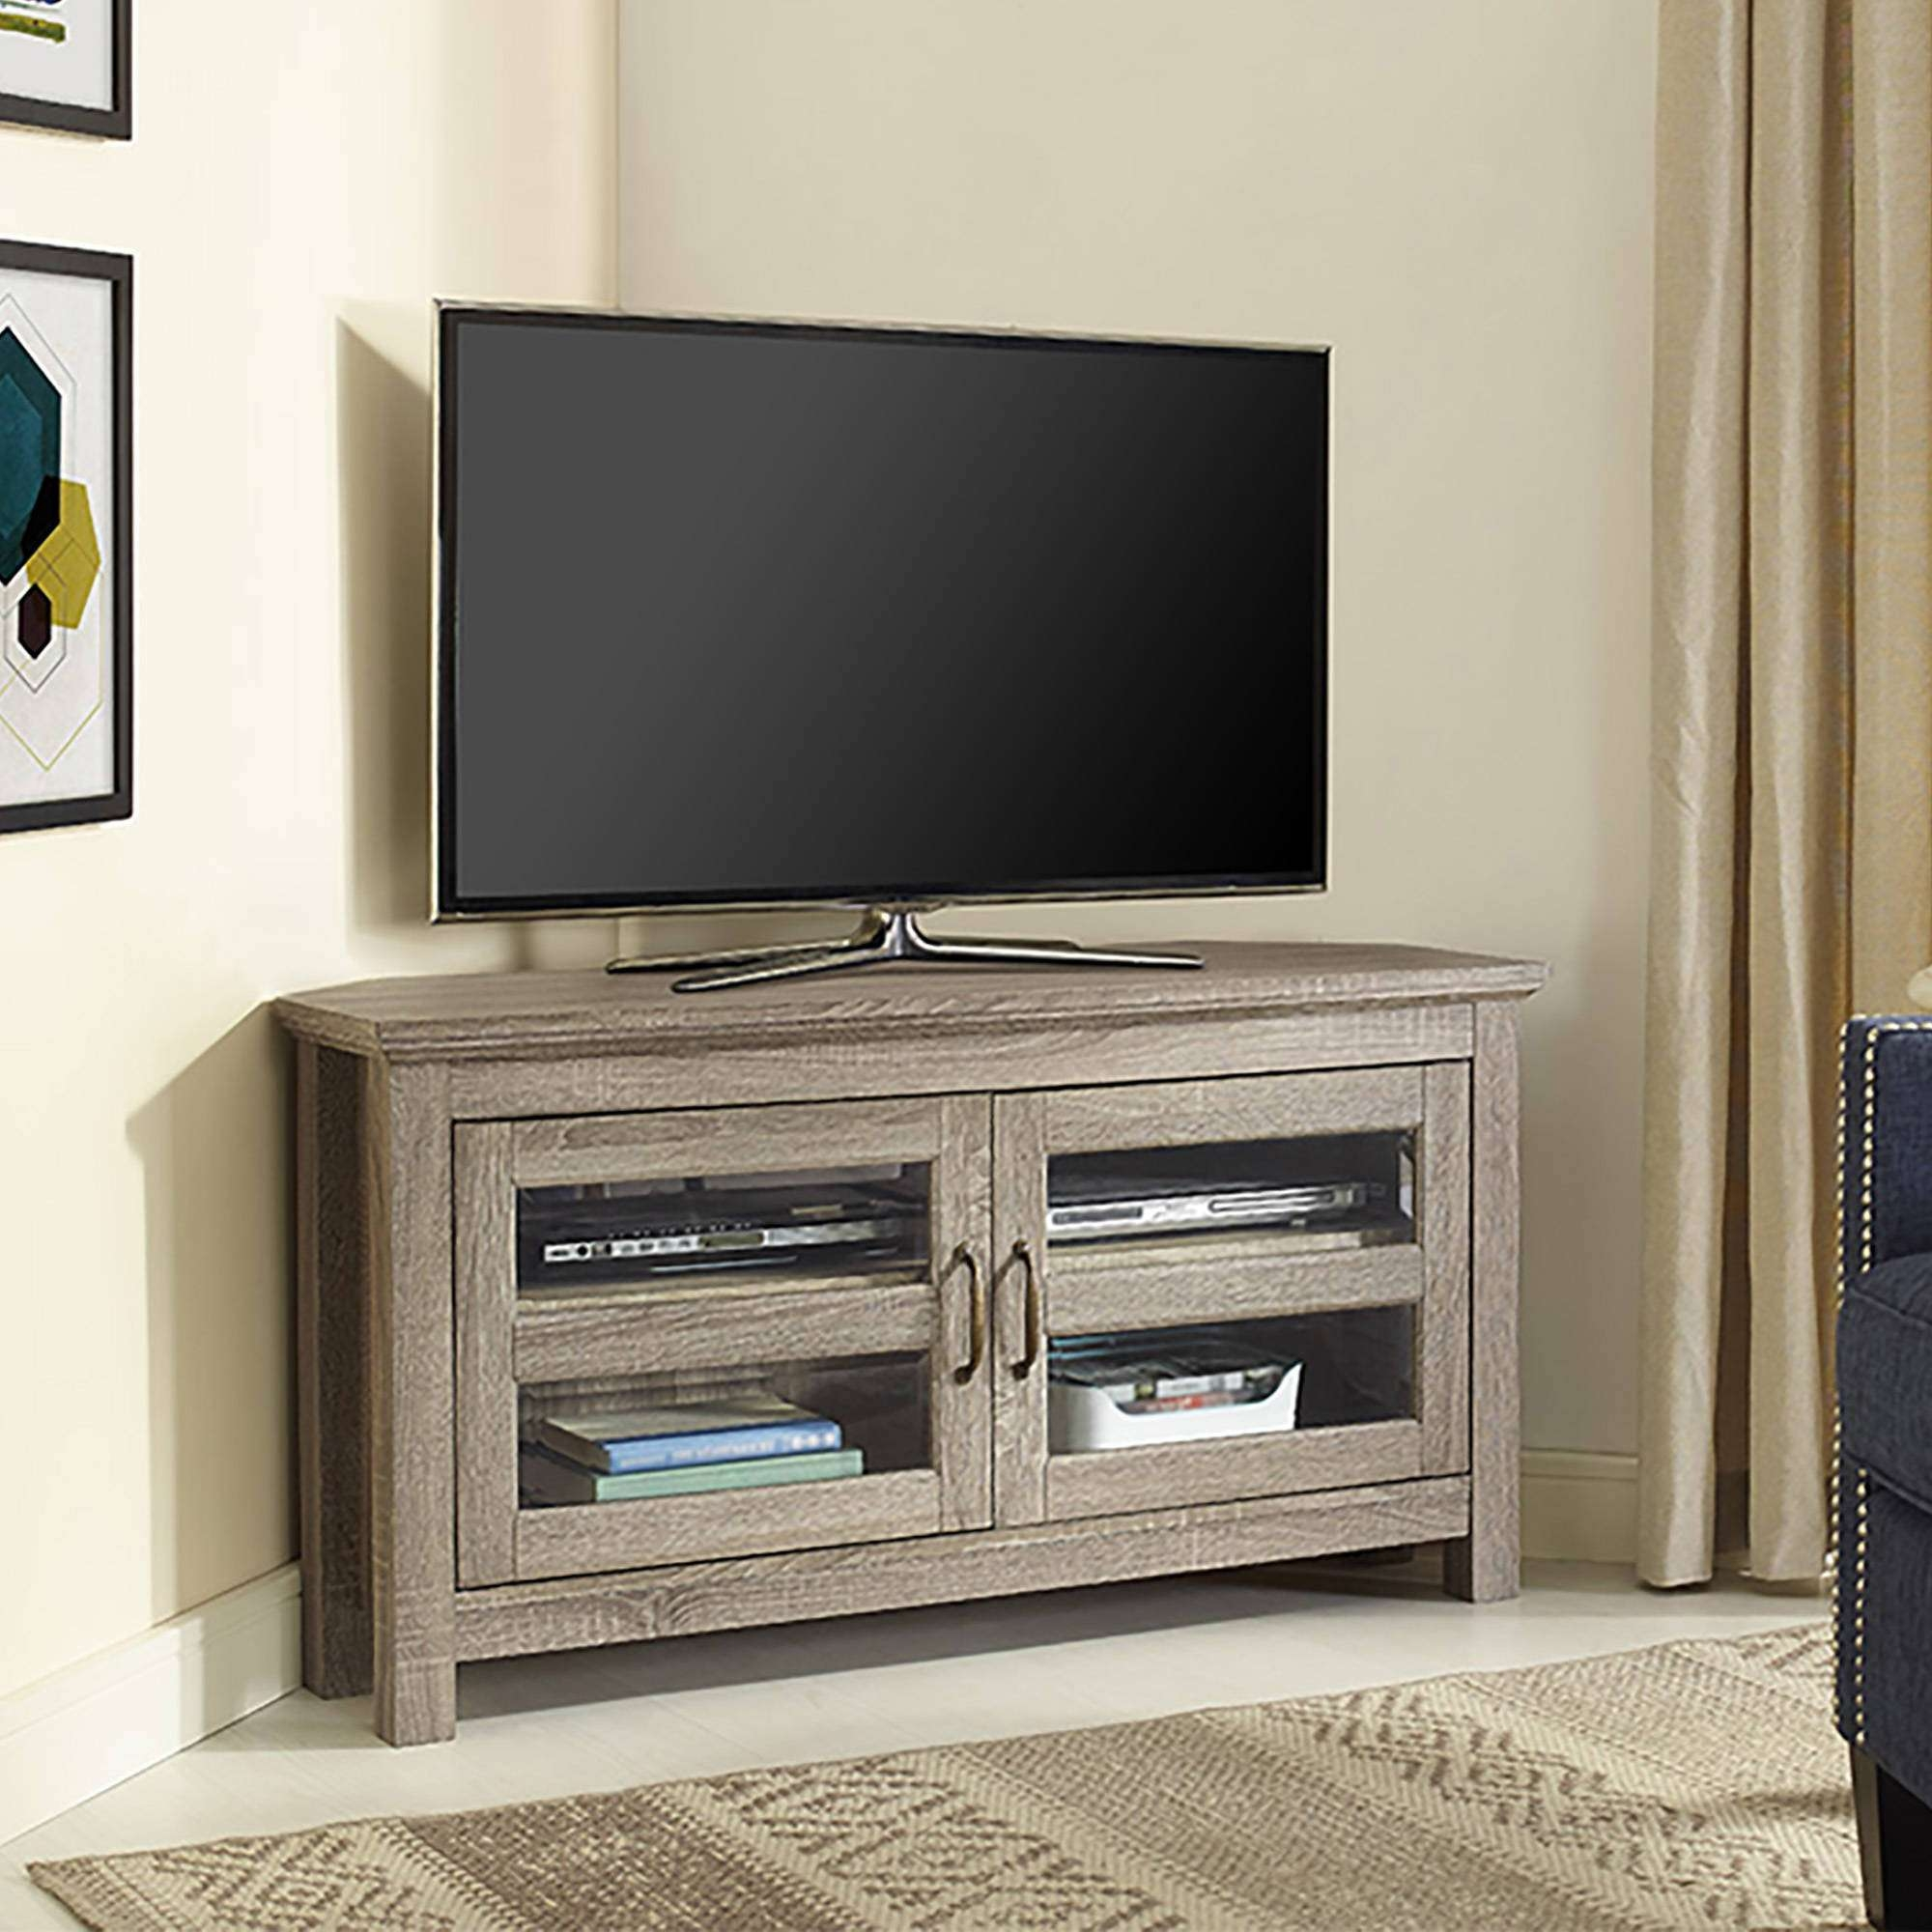 Fancy Walker Edison Corner Tv Stand 64 On Home Designing With Cornet Tv Stands (View 6 of 15)